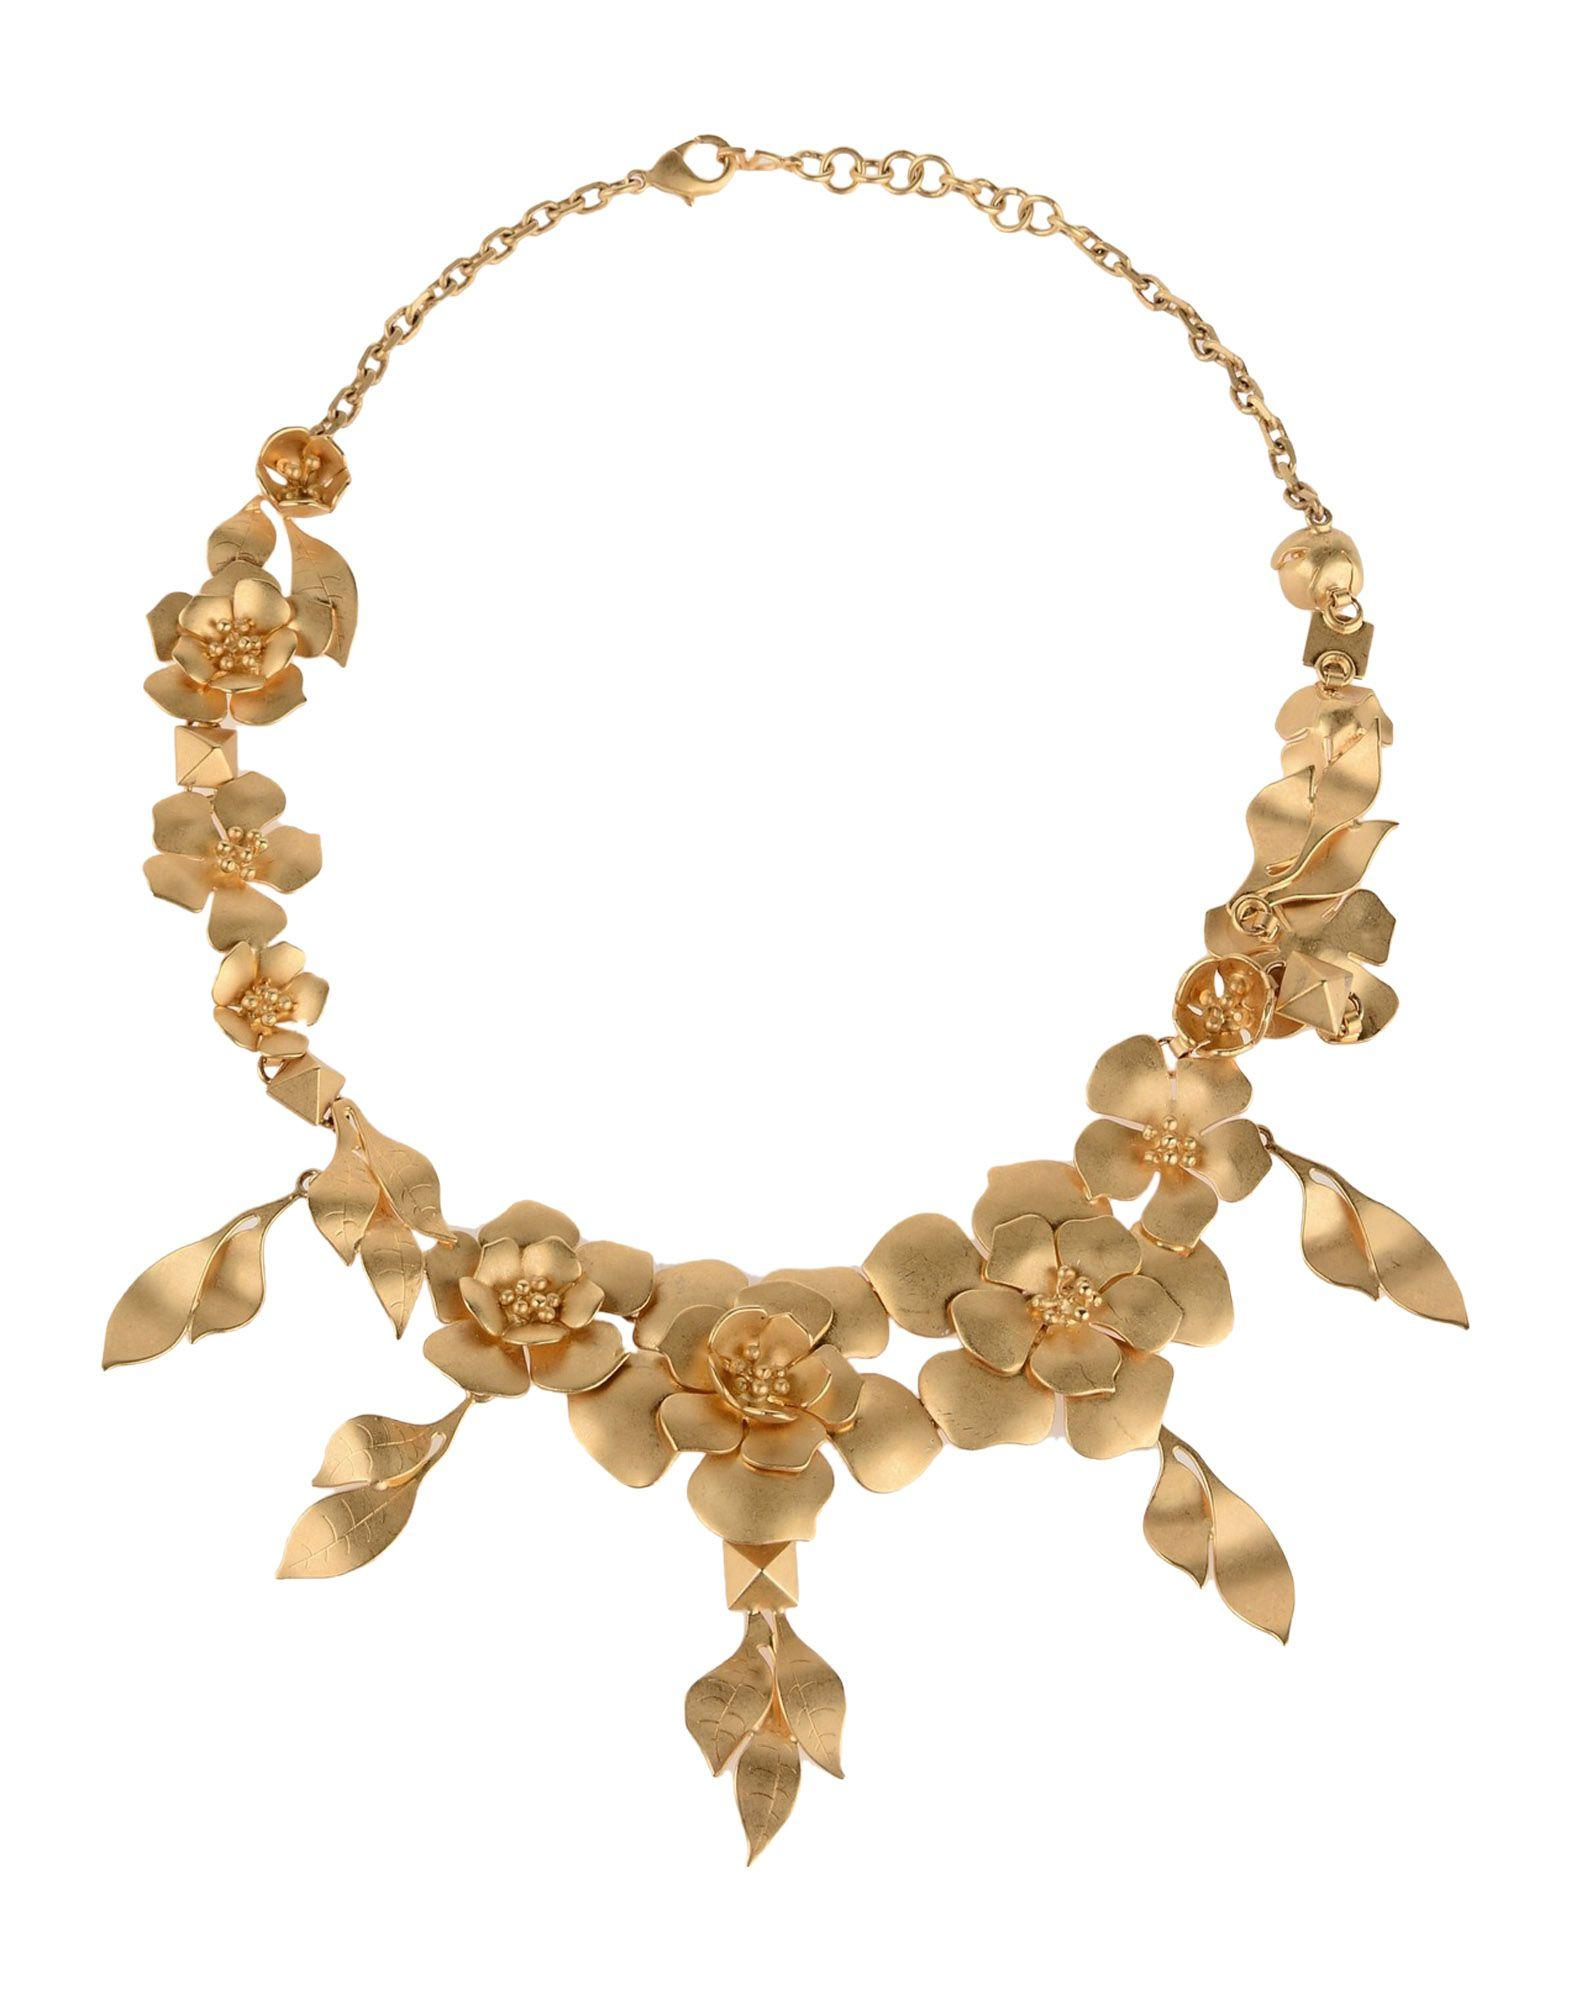 Valentino Garavani Necklace In Gold